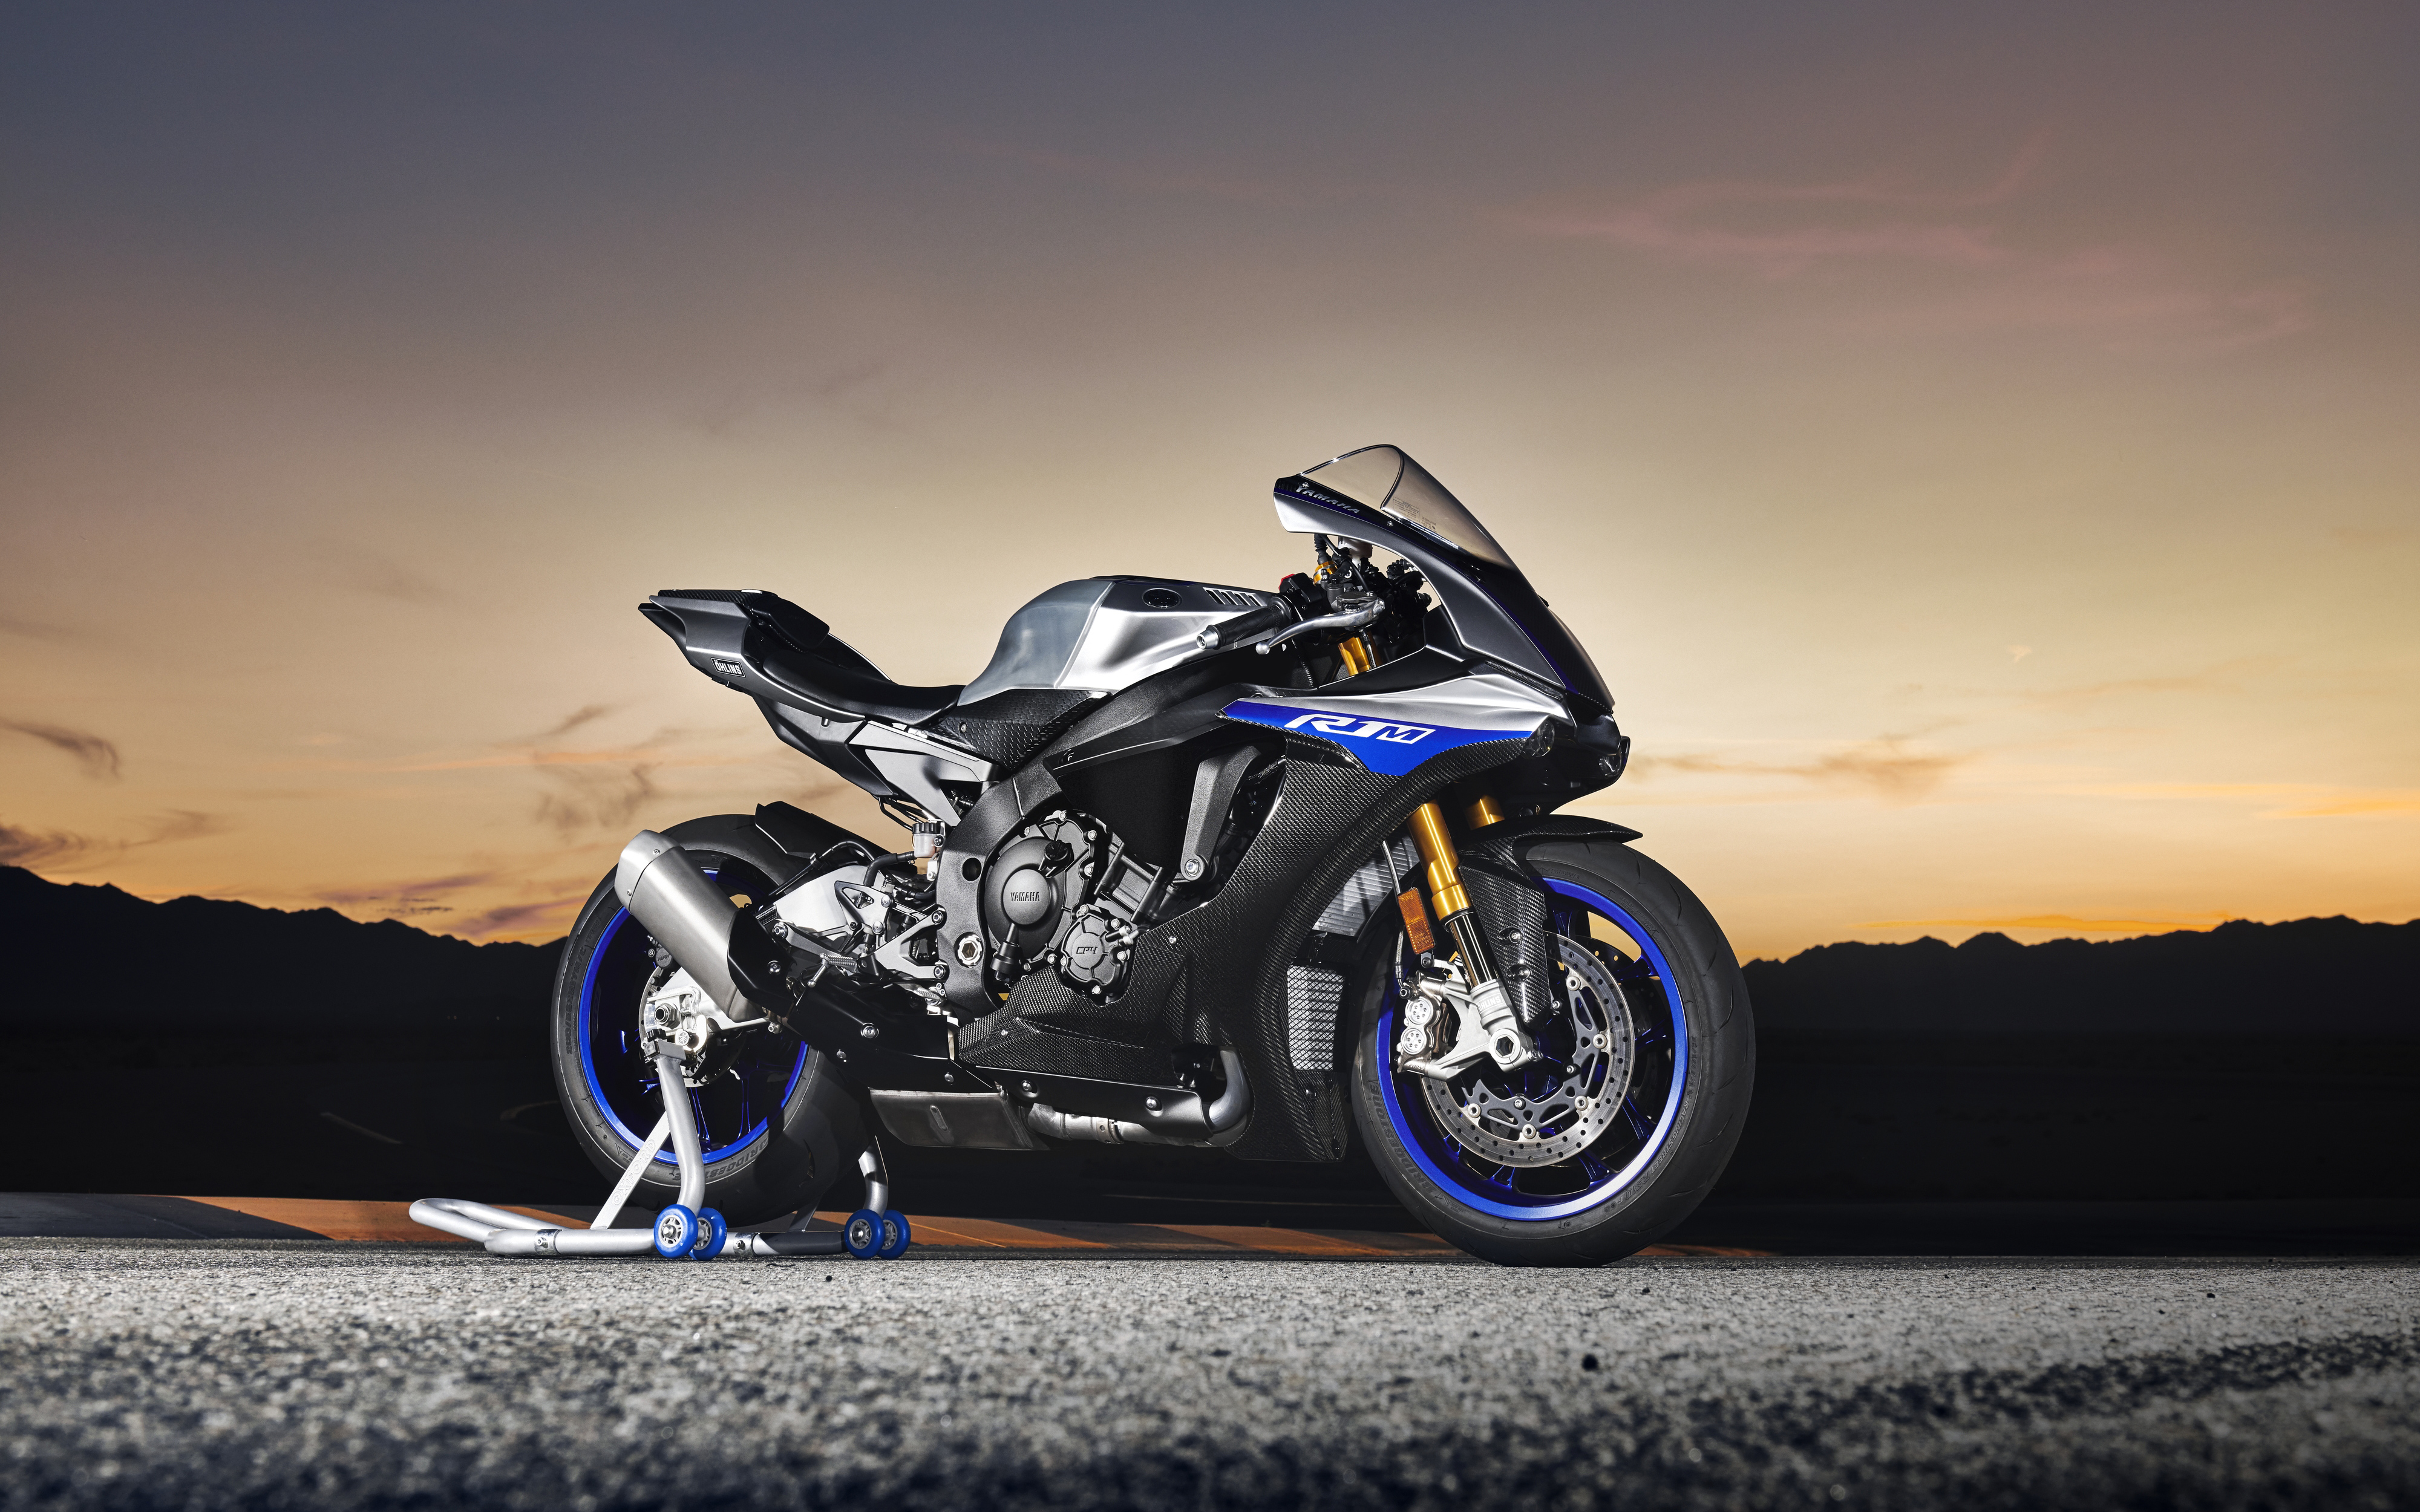 Yamaha YZF R1M 2018 4K Wallpapers